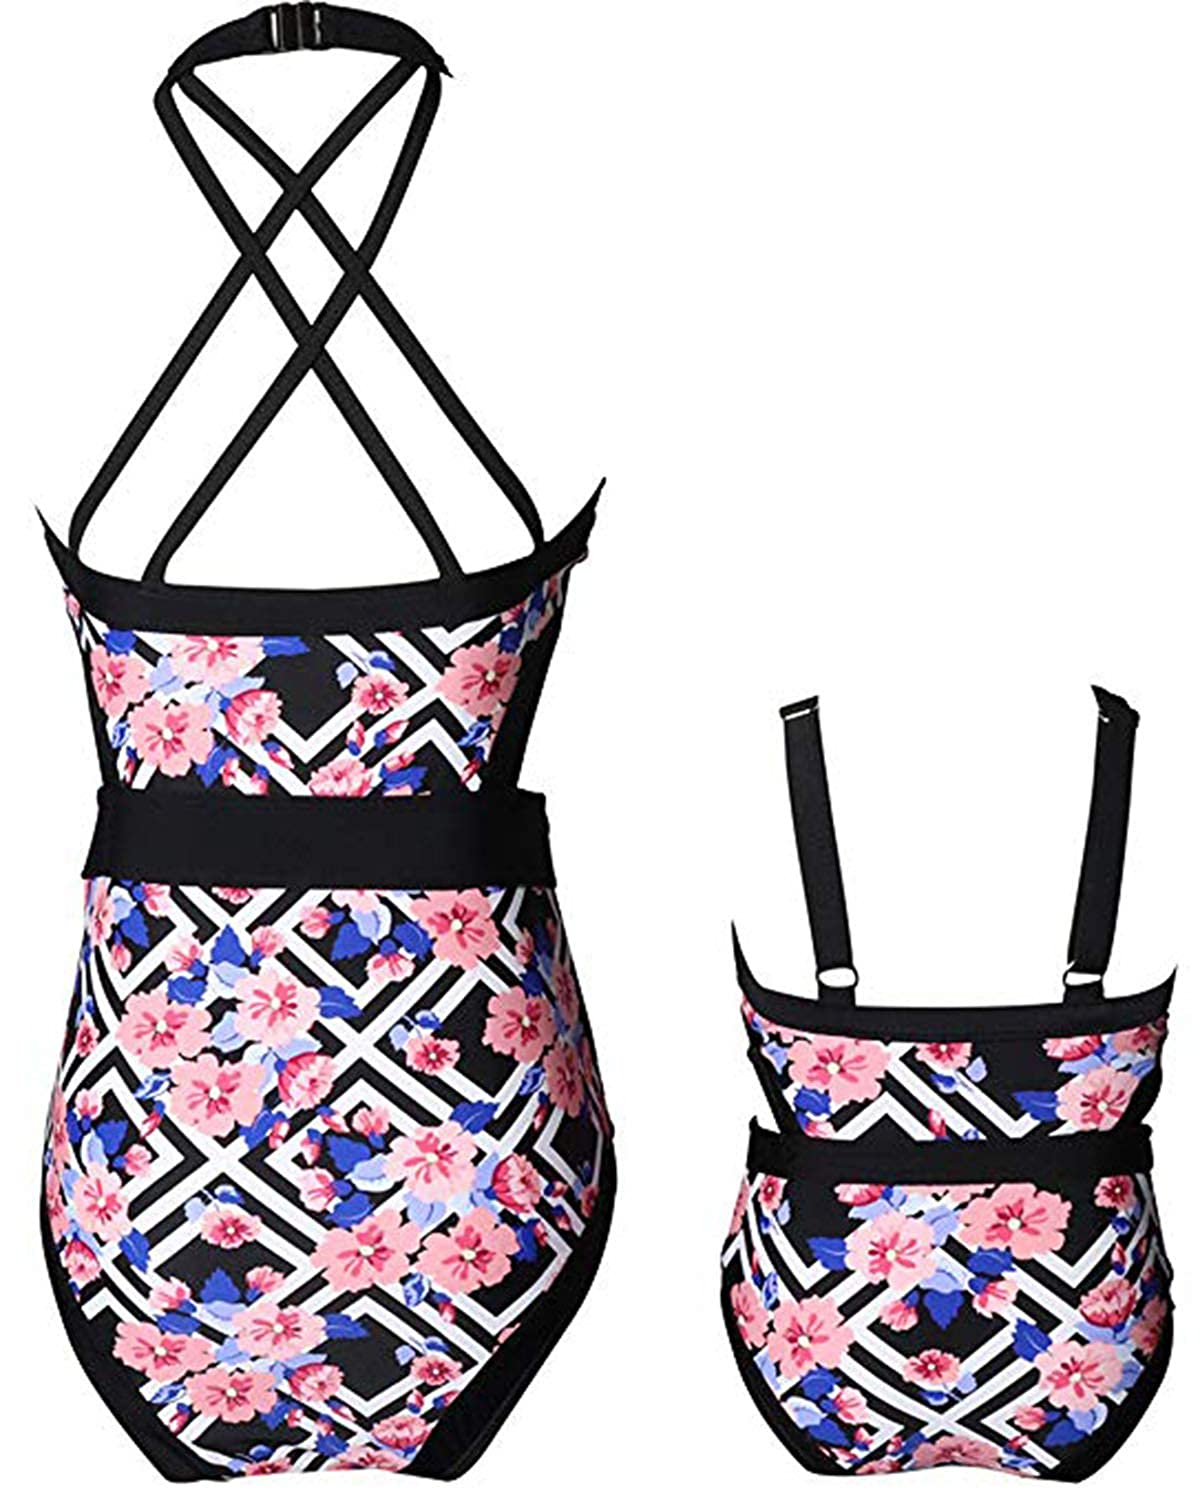 Mommy and me Swimsuits Floral Women Girls Bikini Sets One Piece Family Matching Beach Swimwear